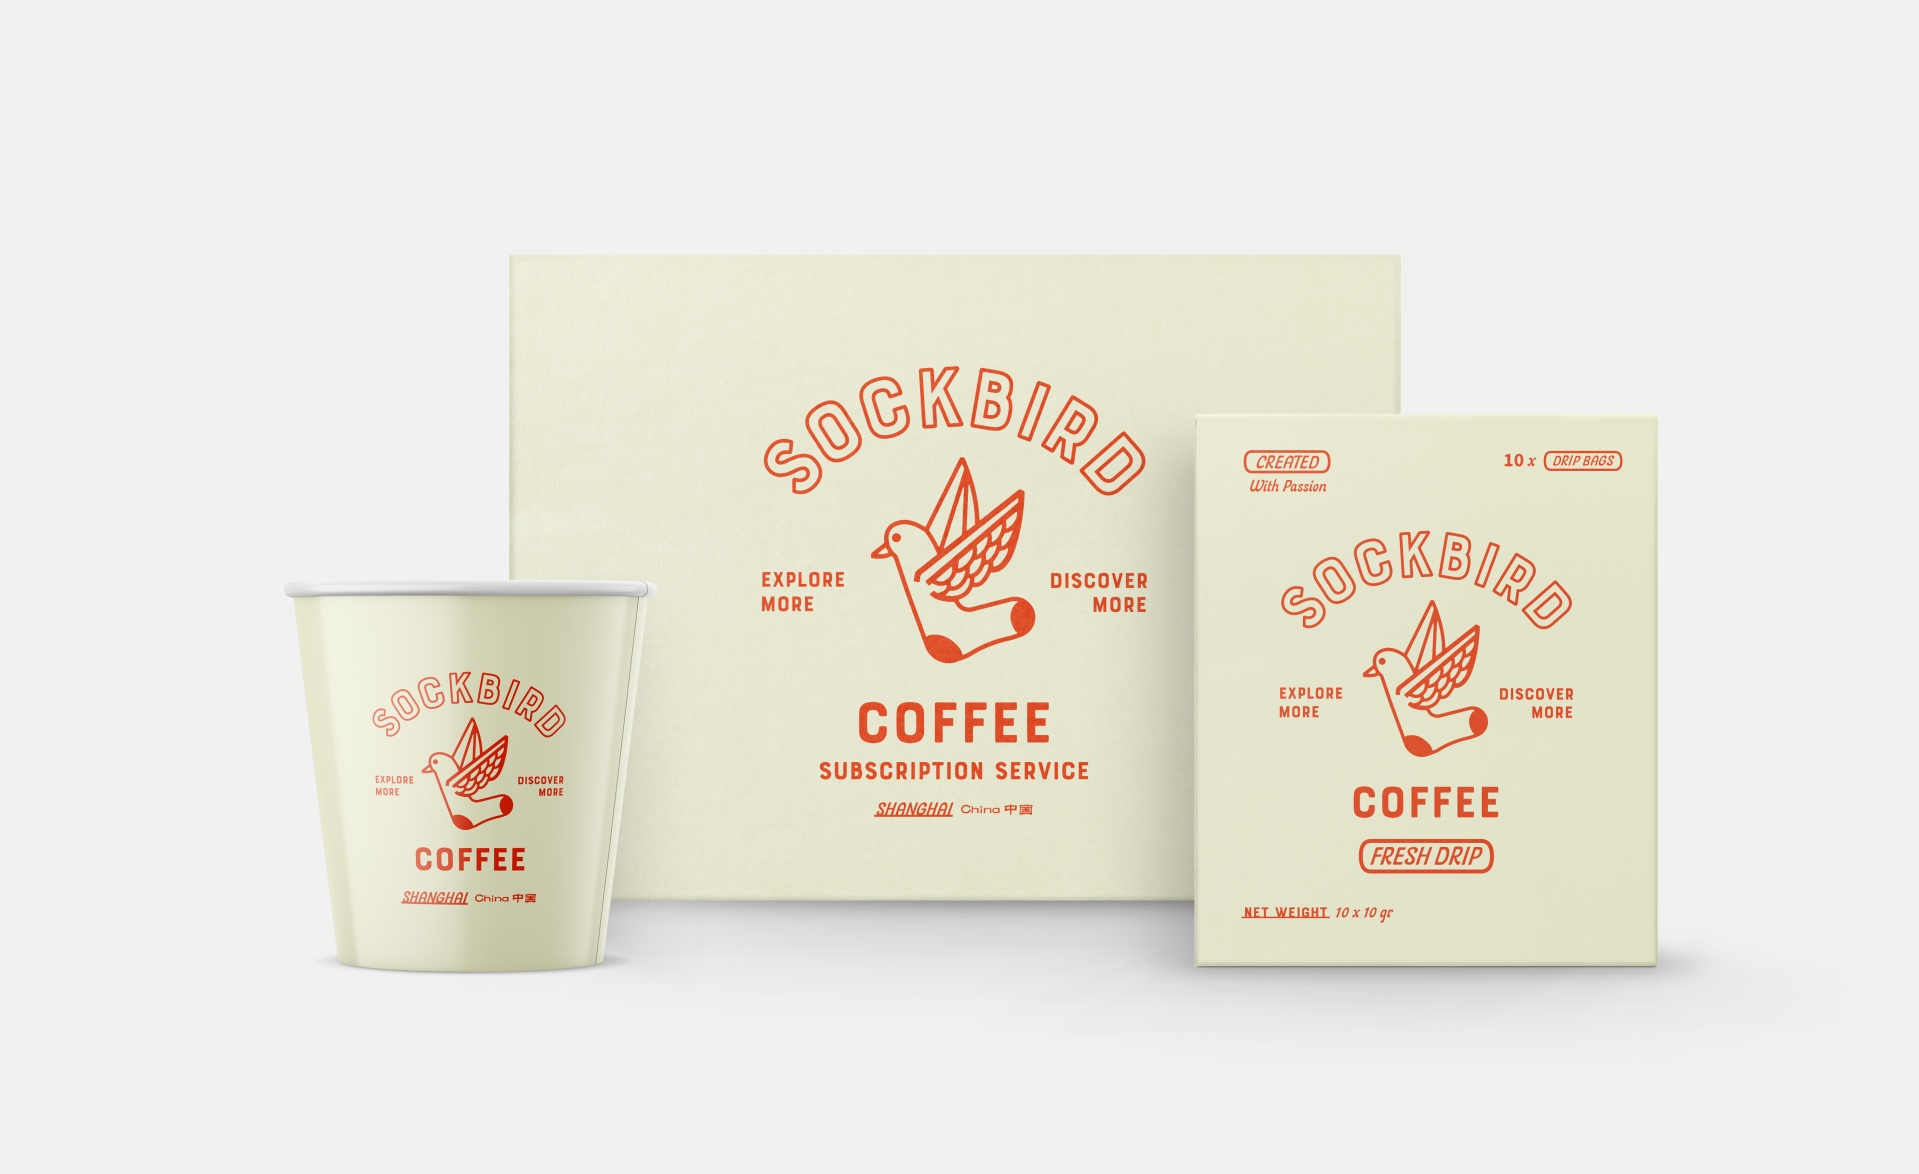 subscription-sockbird-coffee-zeki-michael-packaging-designer-london-colorado-denver-new-york-austin-freelance-graphic-branding-design-identity-craft-beer-liqueur-coffee copy.jpg